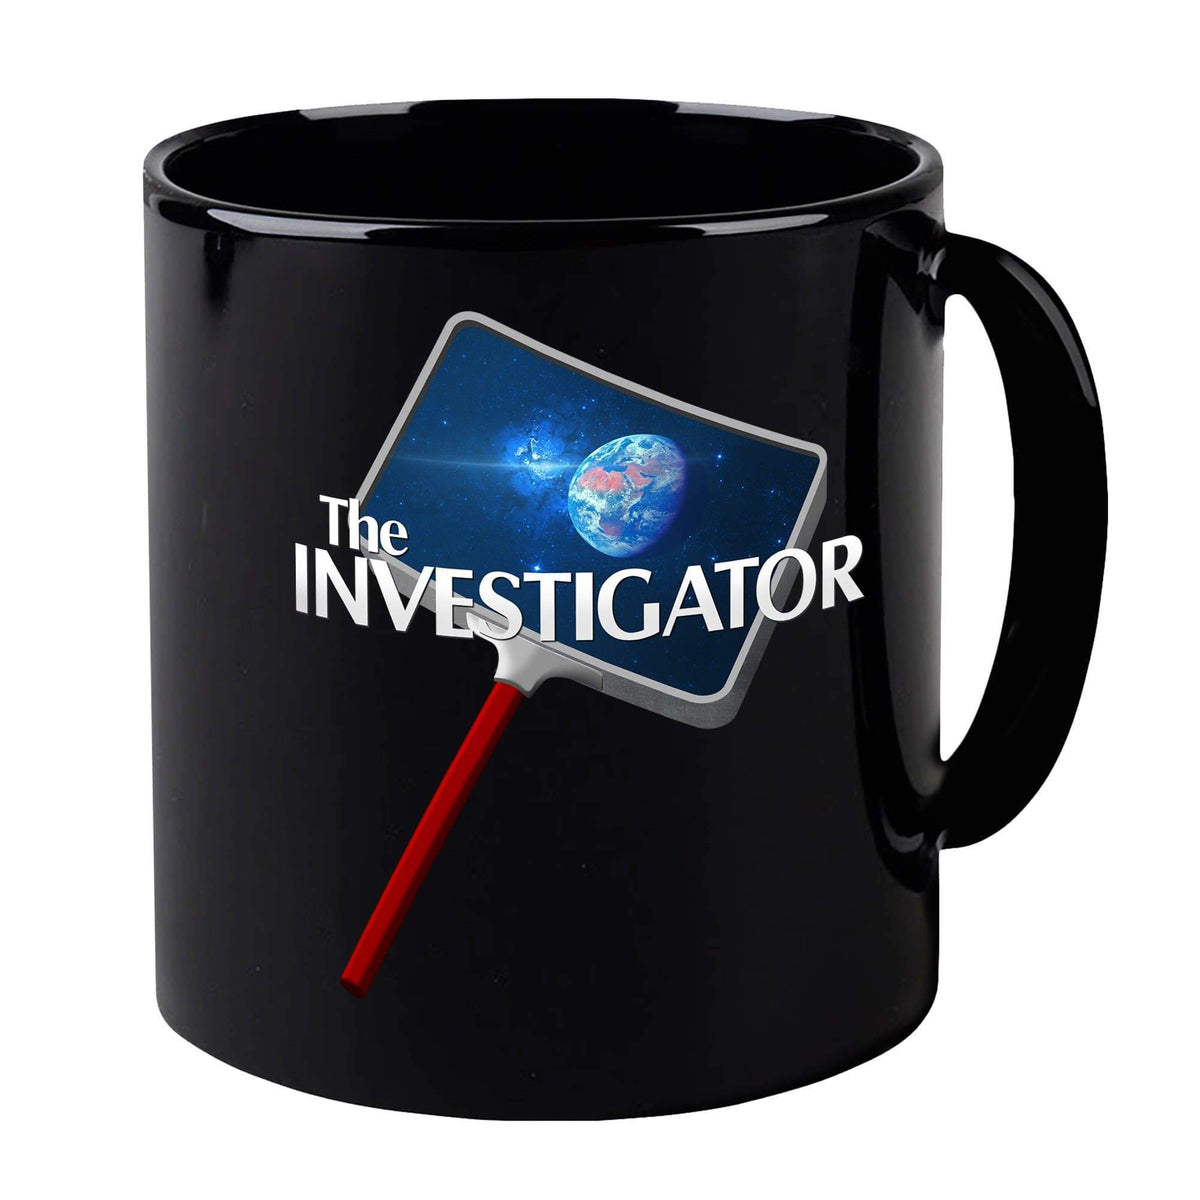 The Investigator Mug [Official & Exclusive] - The Gerry Anderson Store